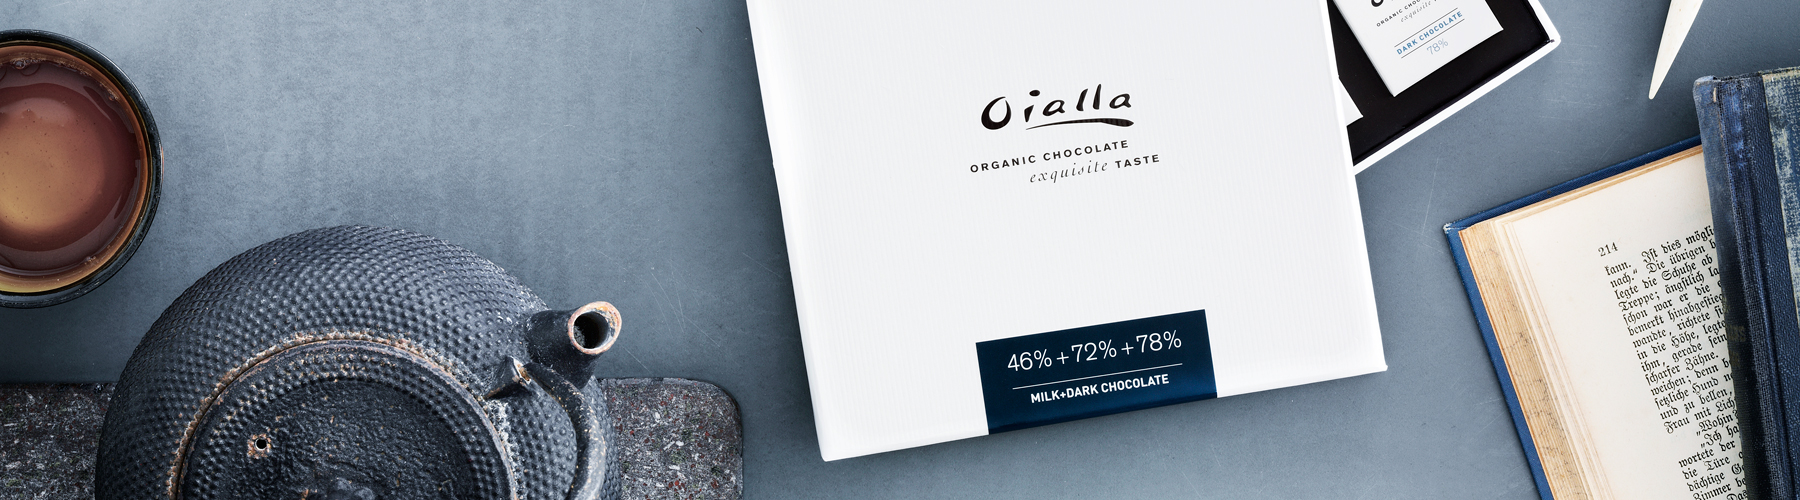 Oialla milk and dark chocolate